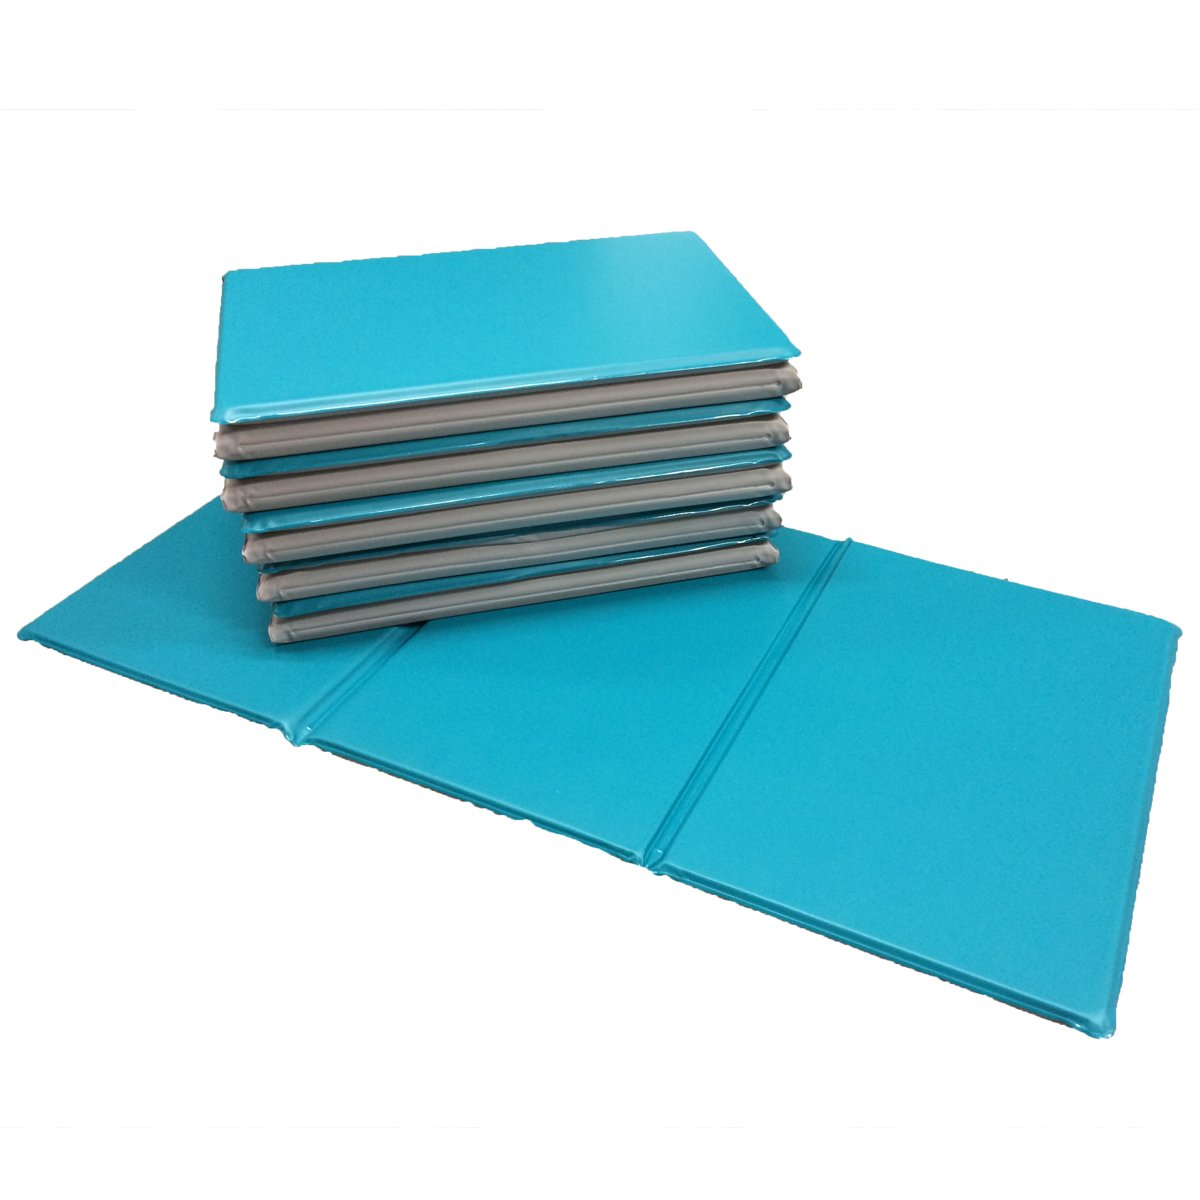 NEW 5x Triple Folding Nursery Sleep Mats in Aqua/Stone Grey for Children & Toddlers Active Learning 681